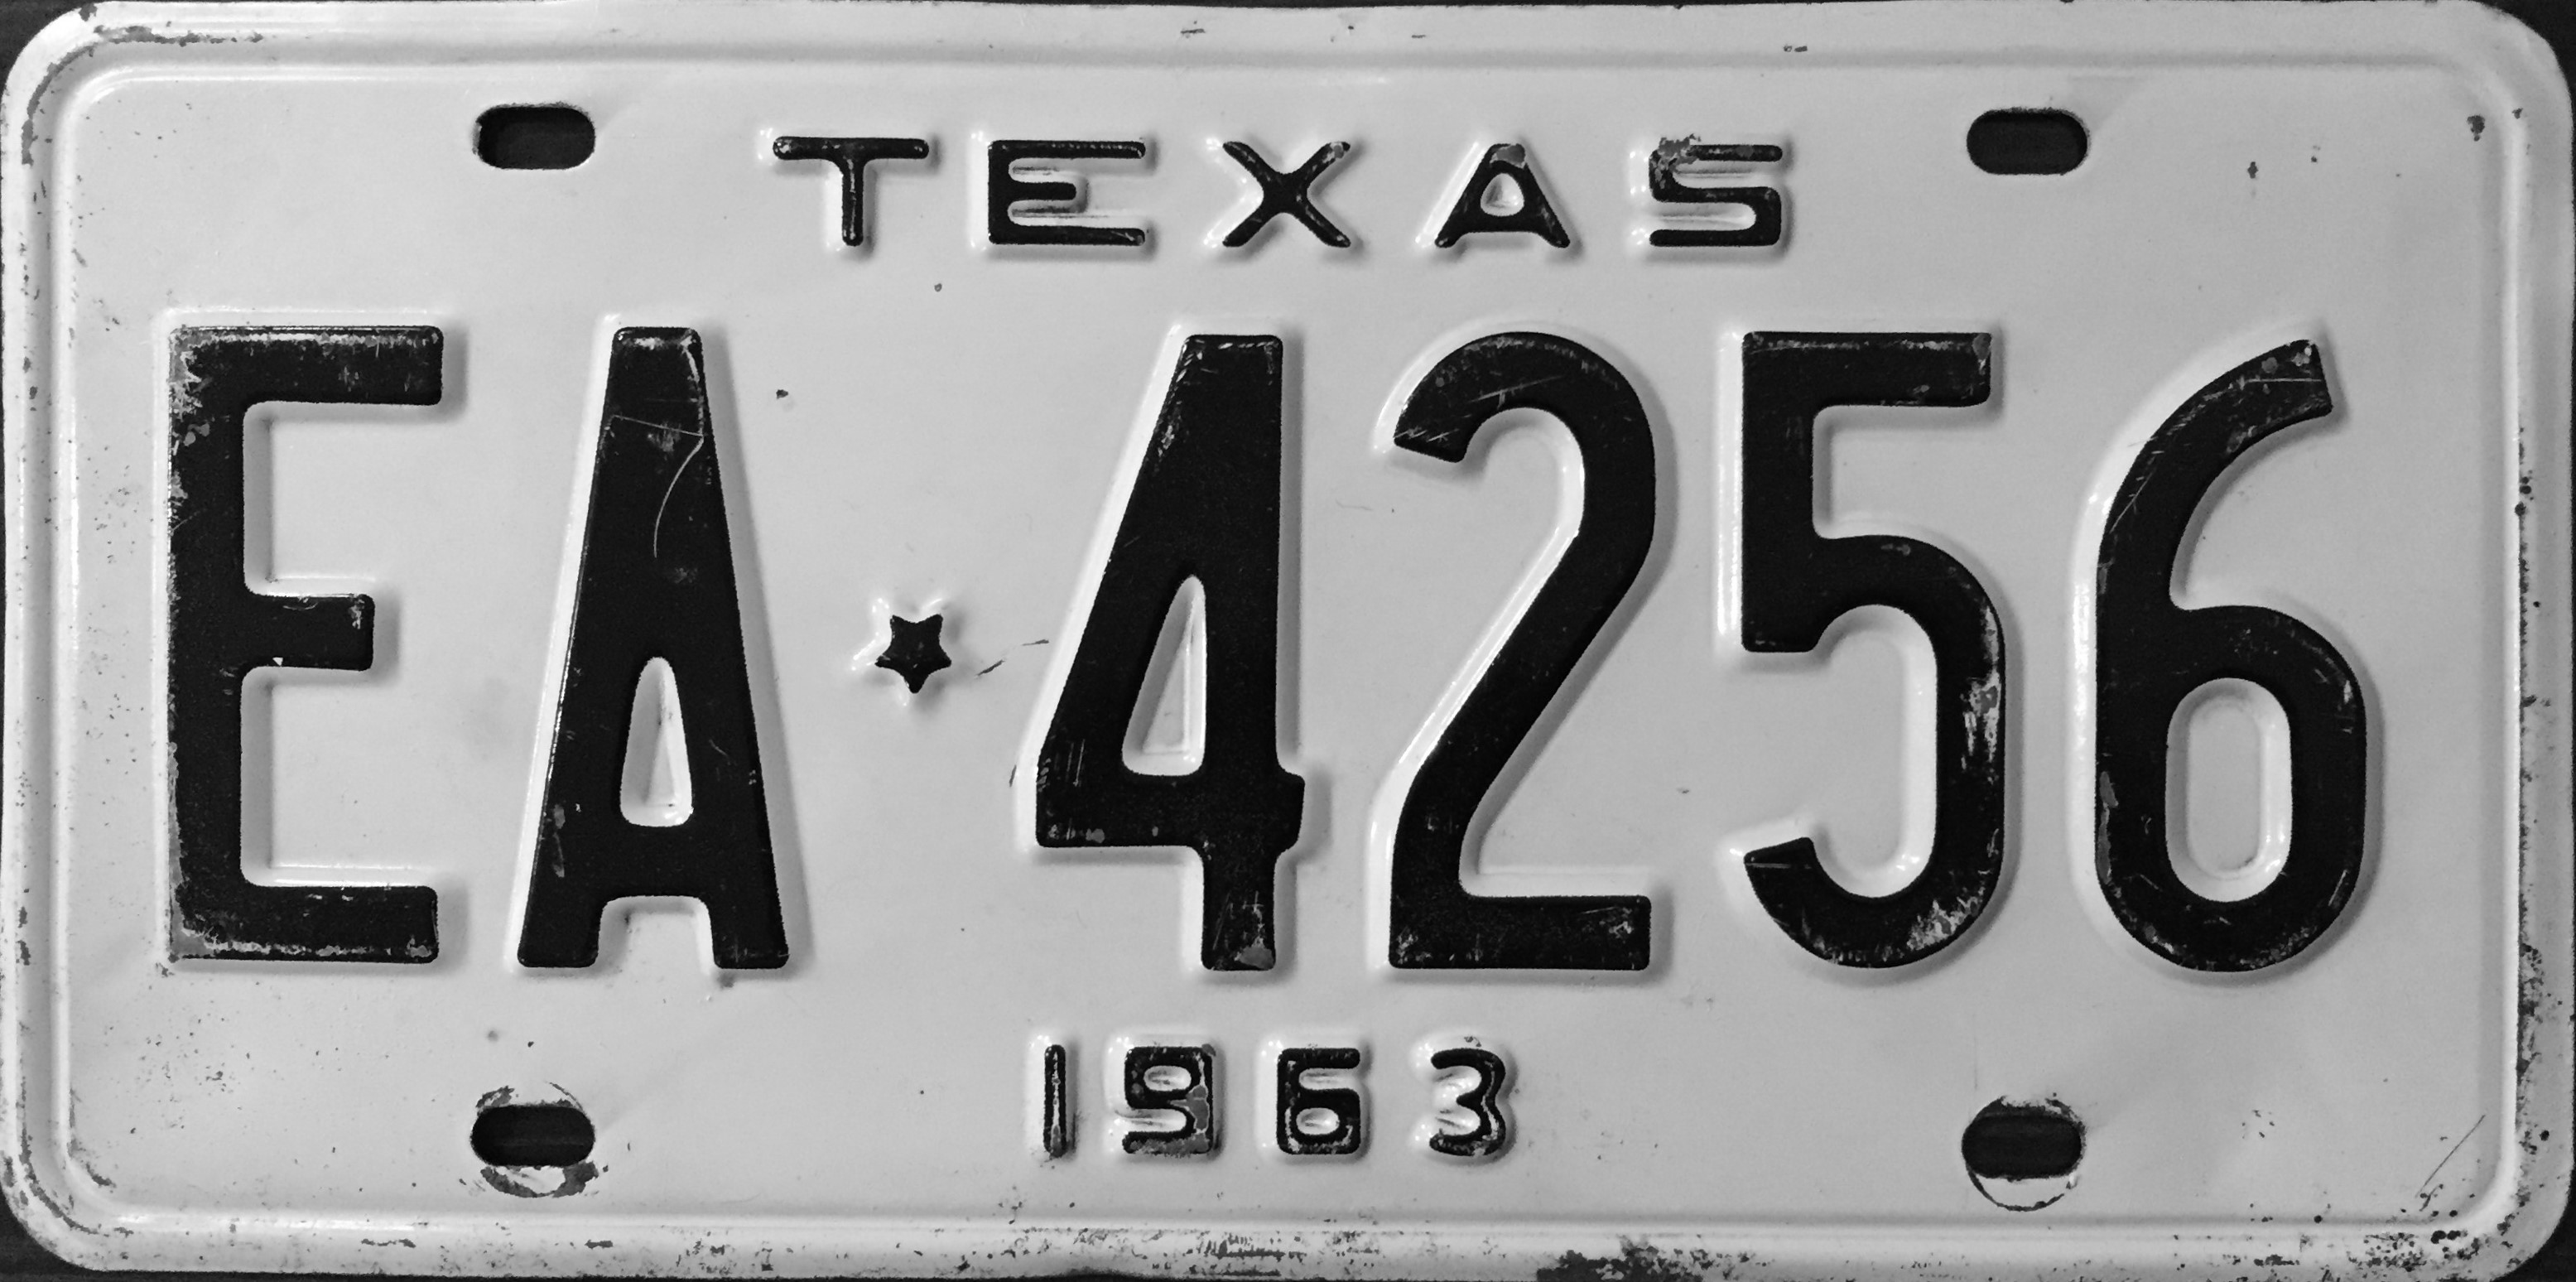 File:1963 Texas license plate.jpg - Wikimedia Commons